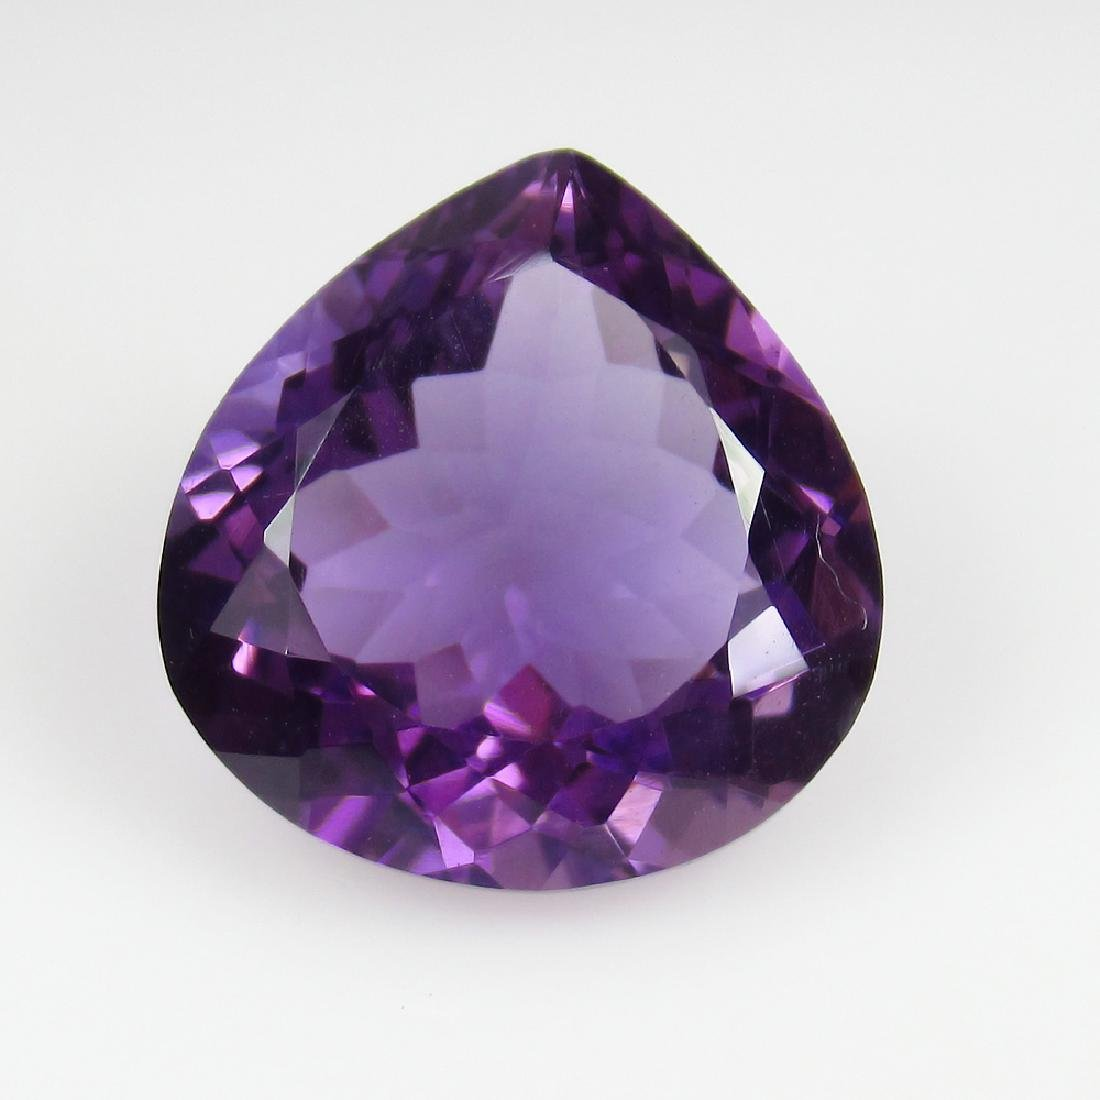 10.24 Ct Genuine Loose Amethyst Excellent Pear Cut